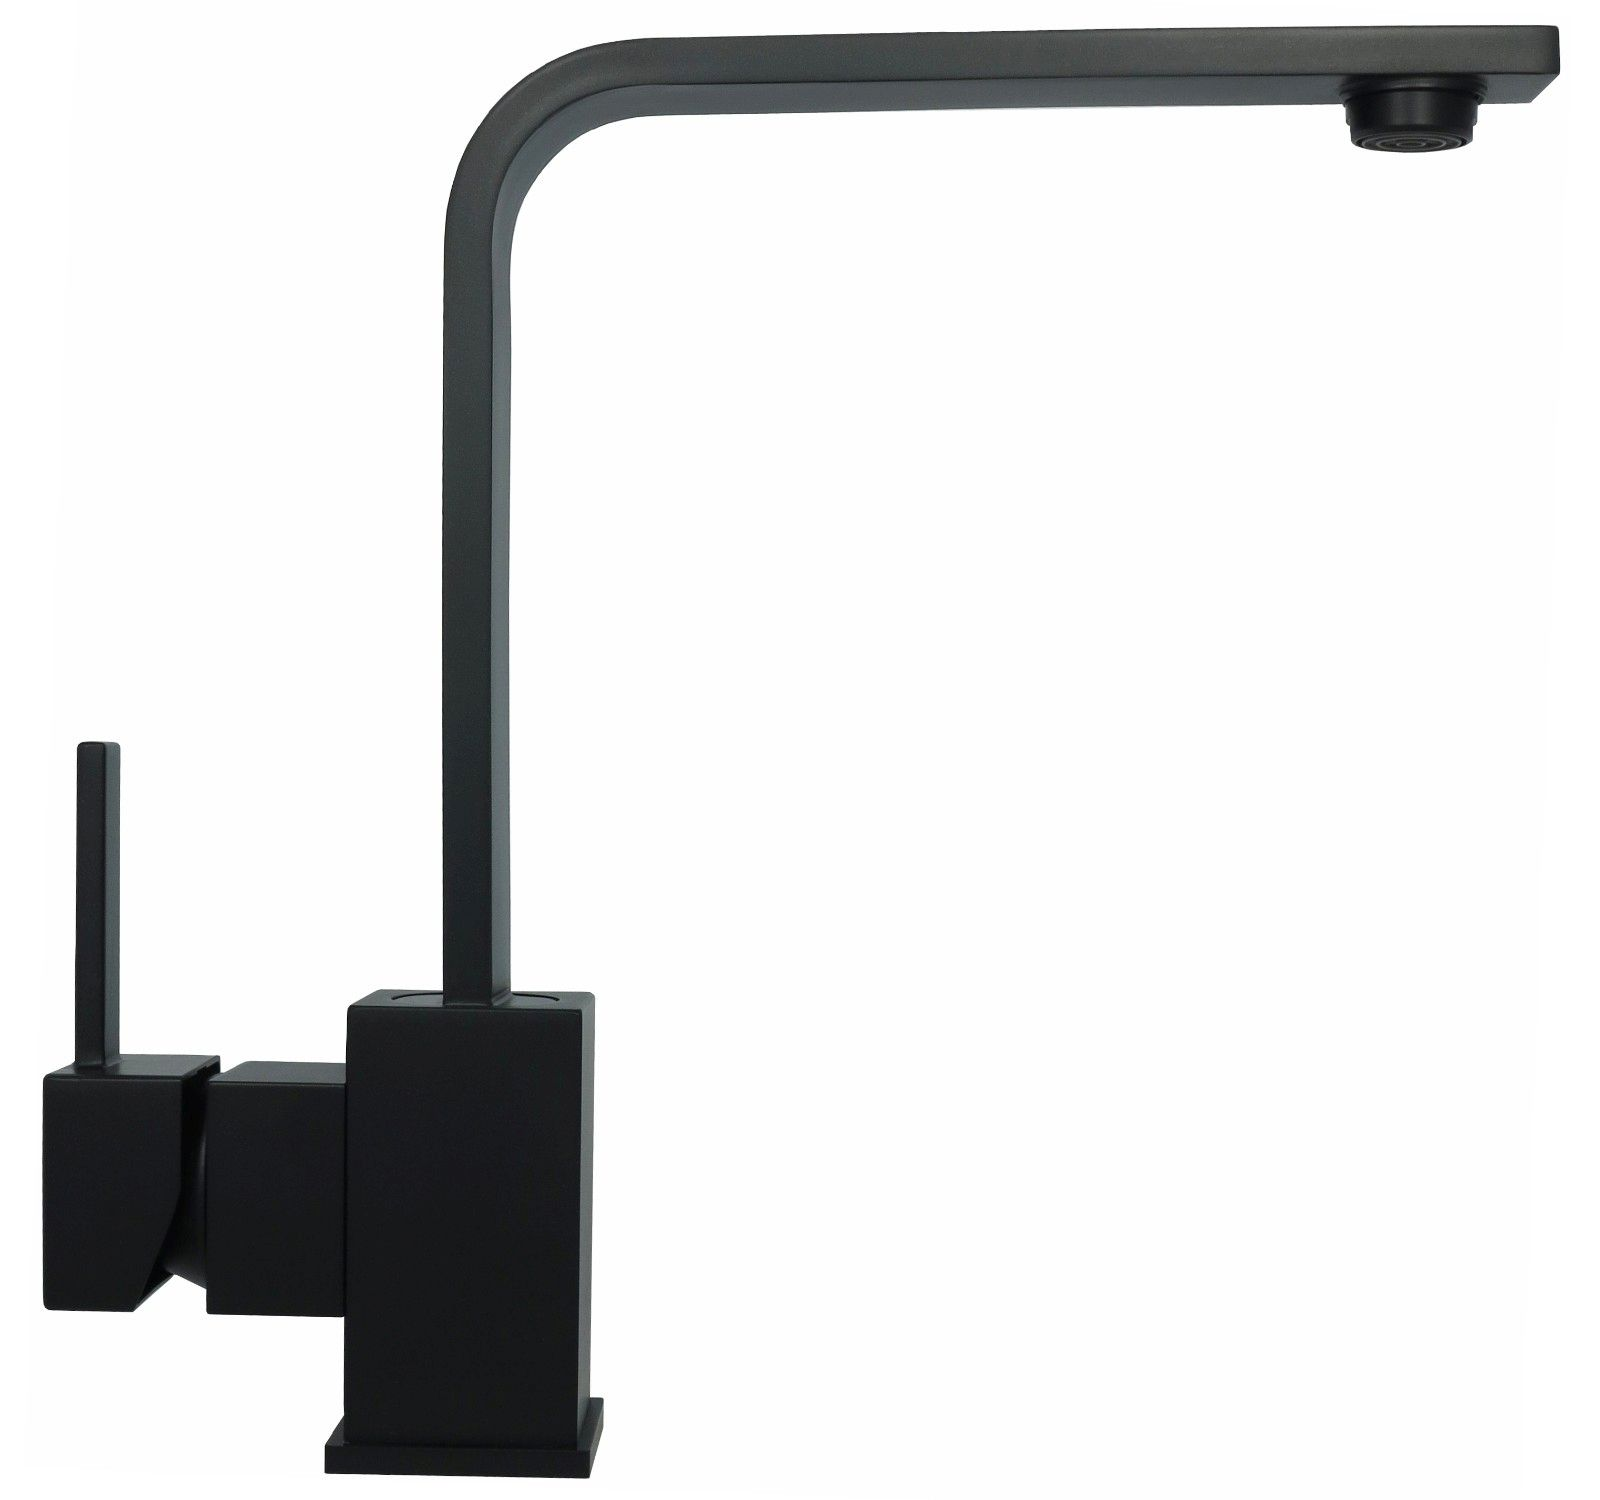 Low pressure kitchen sink tap water tap wash basin kitchen fitting black ebay - Kitchen sink water pressure ...